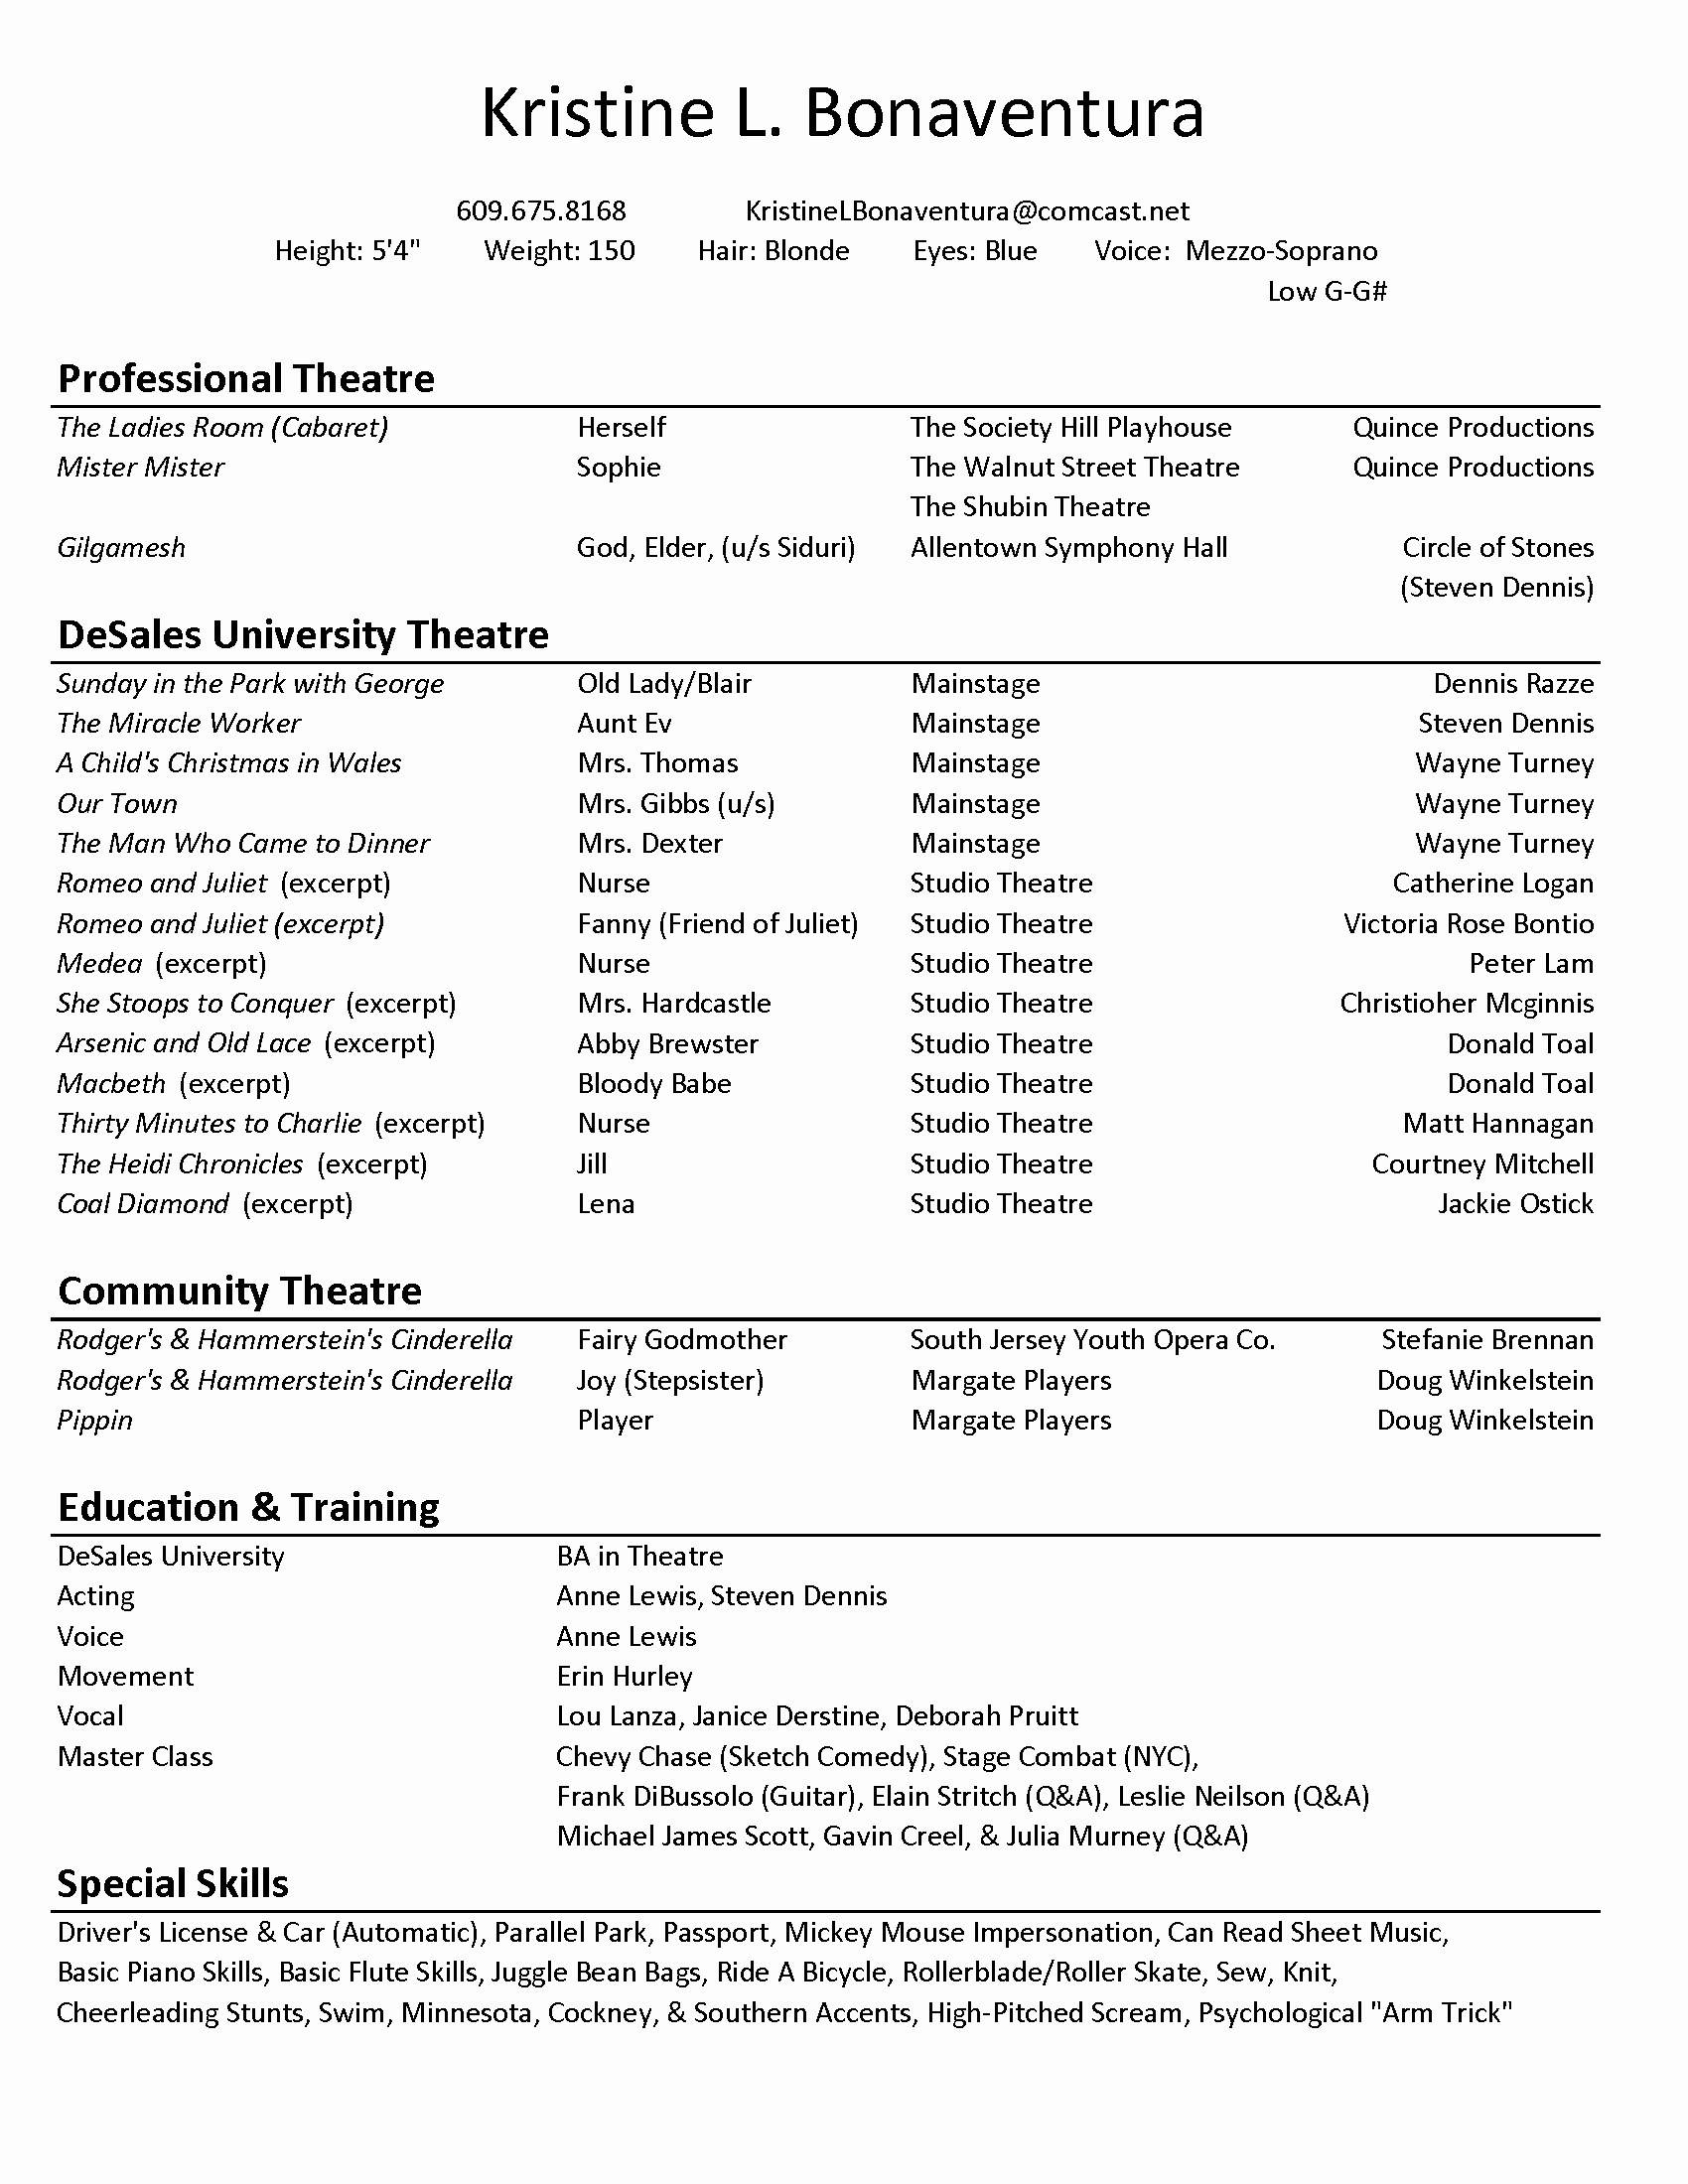 Musical theater Resume Template - theater Resume Template Elegant Musical theatre Resume Beautiful